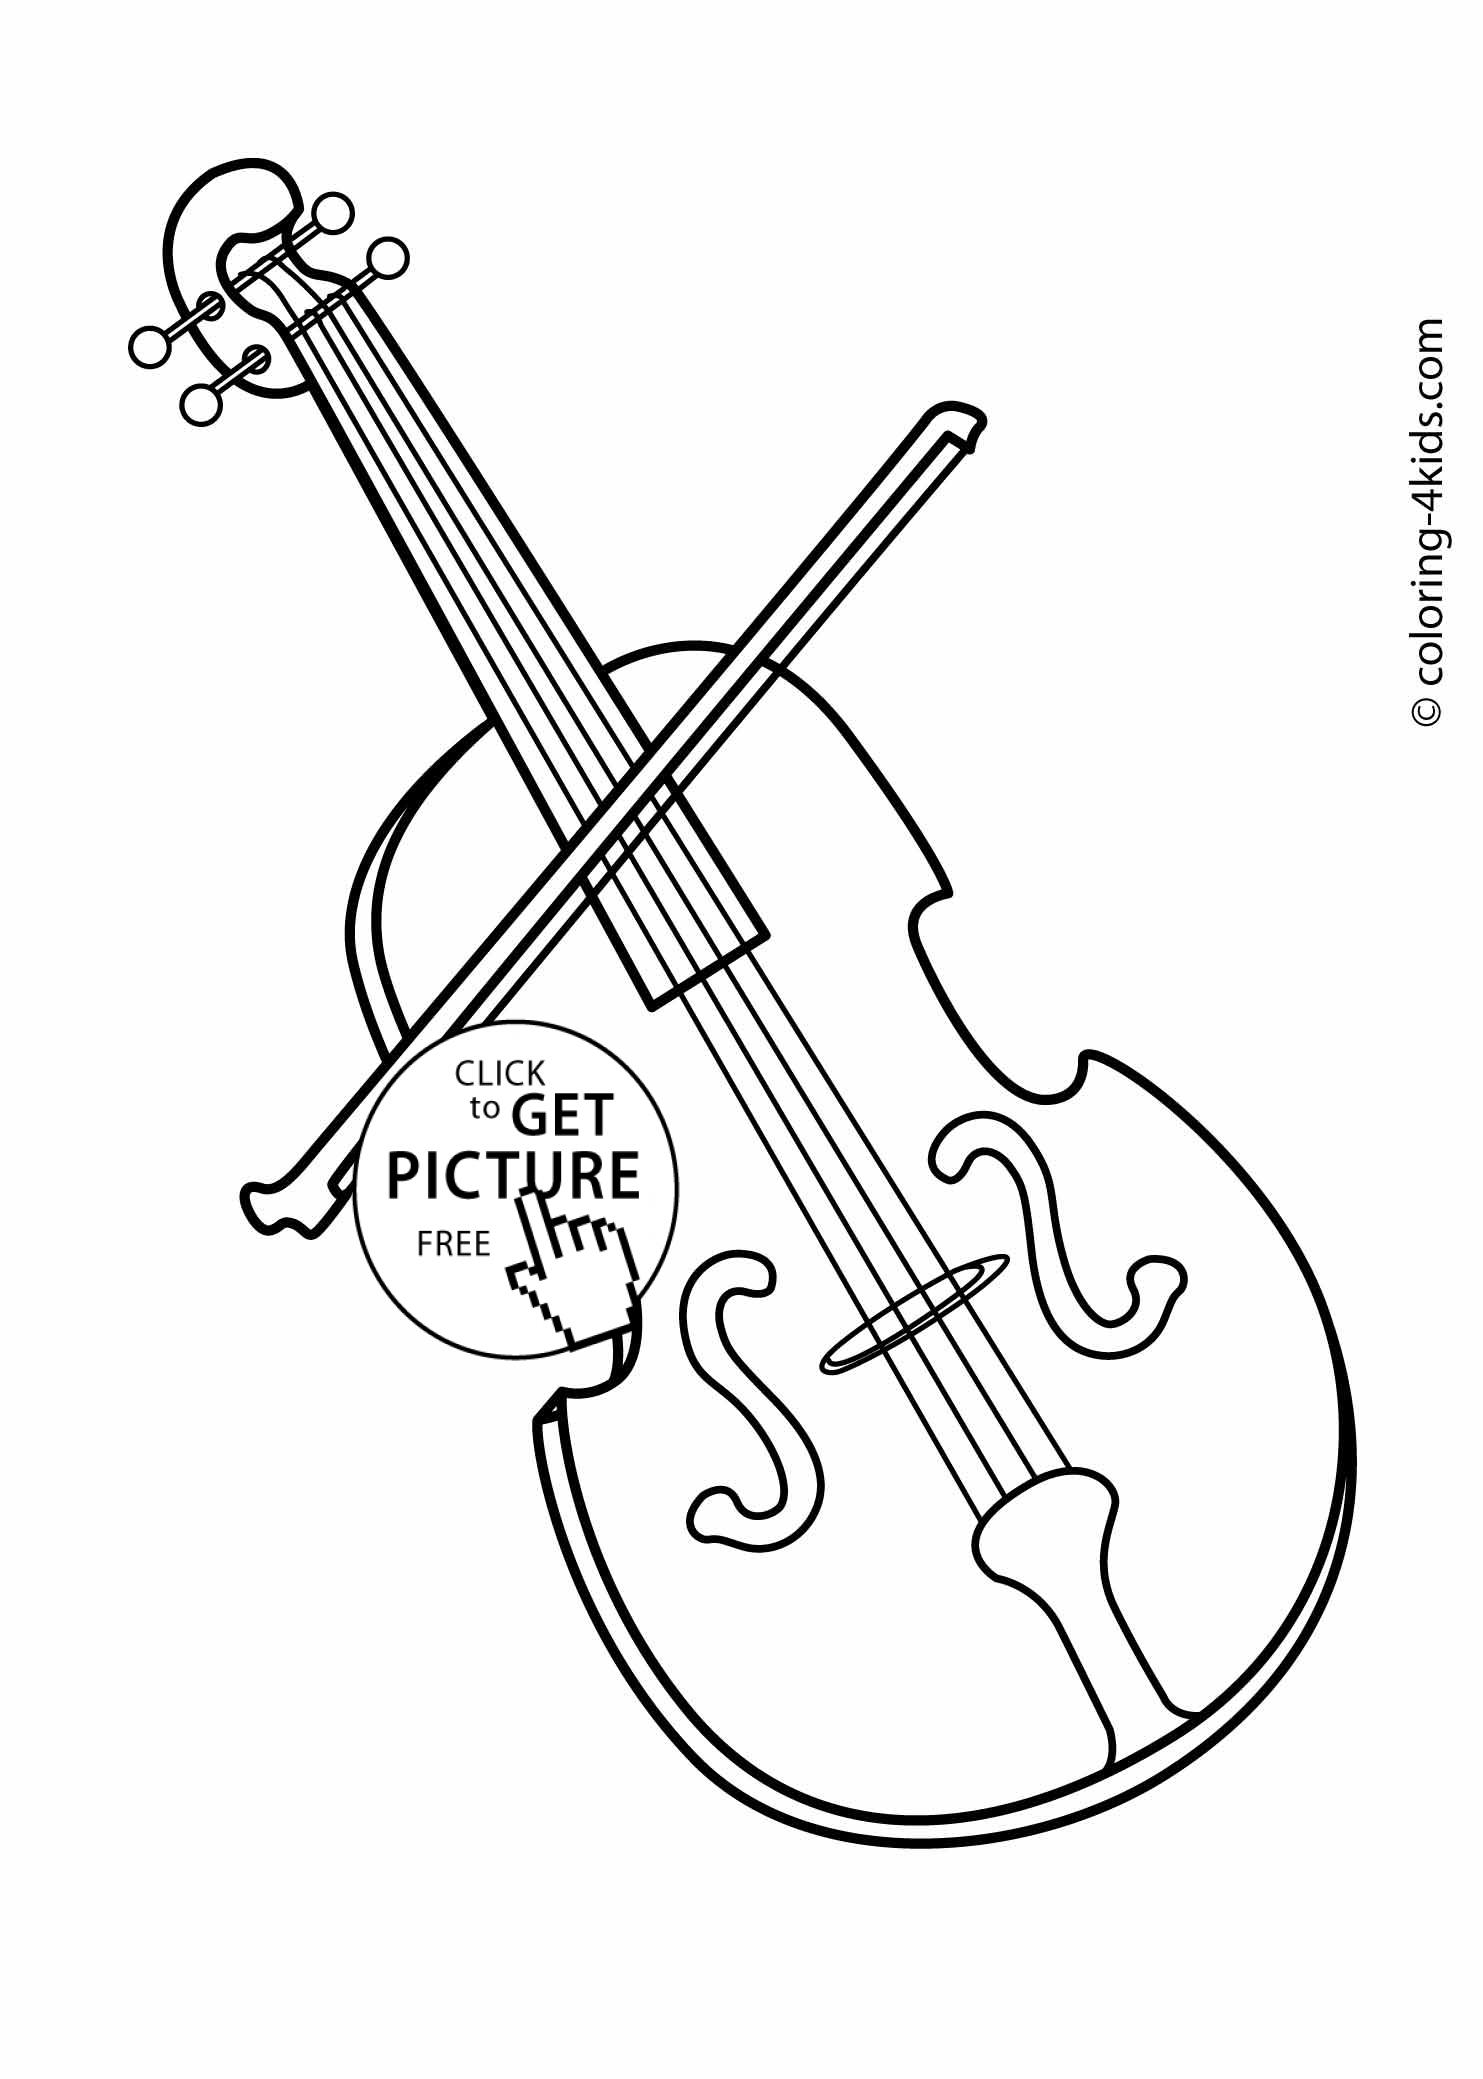 Free coloring pages instruments - Violin Musical Instruments Coloring Pages For Kids Printable